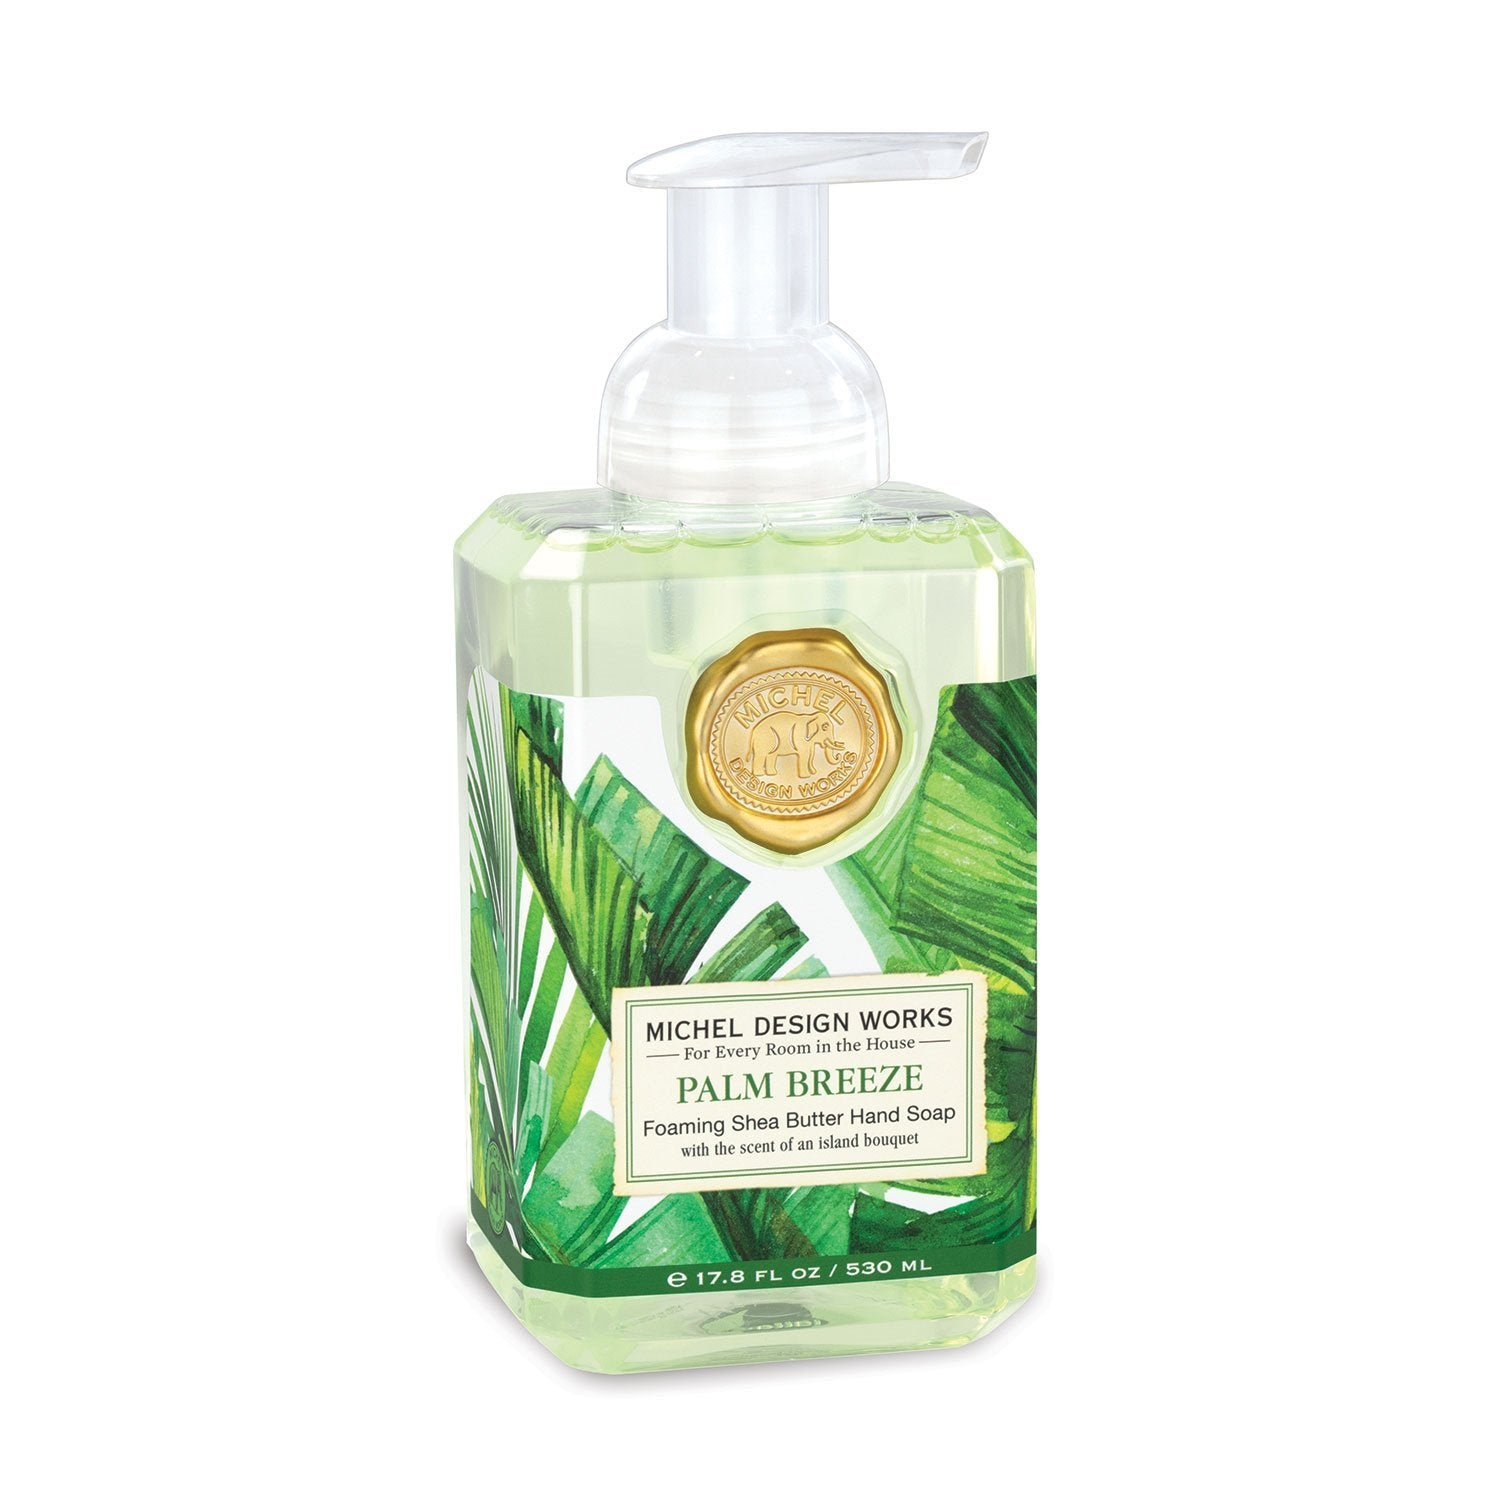 Palm Breeze | Foaming Hand Soap